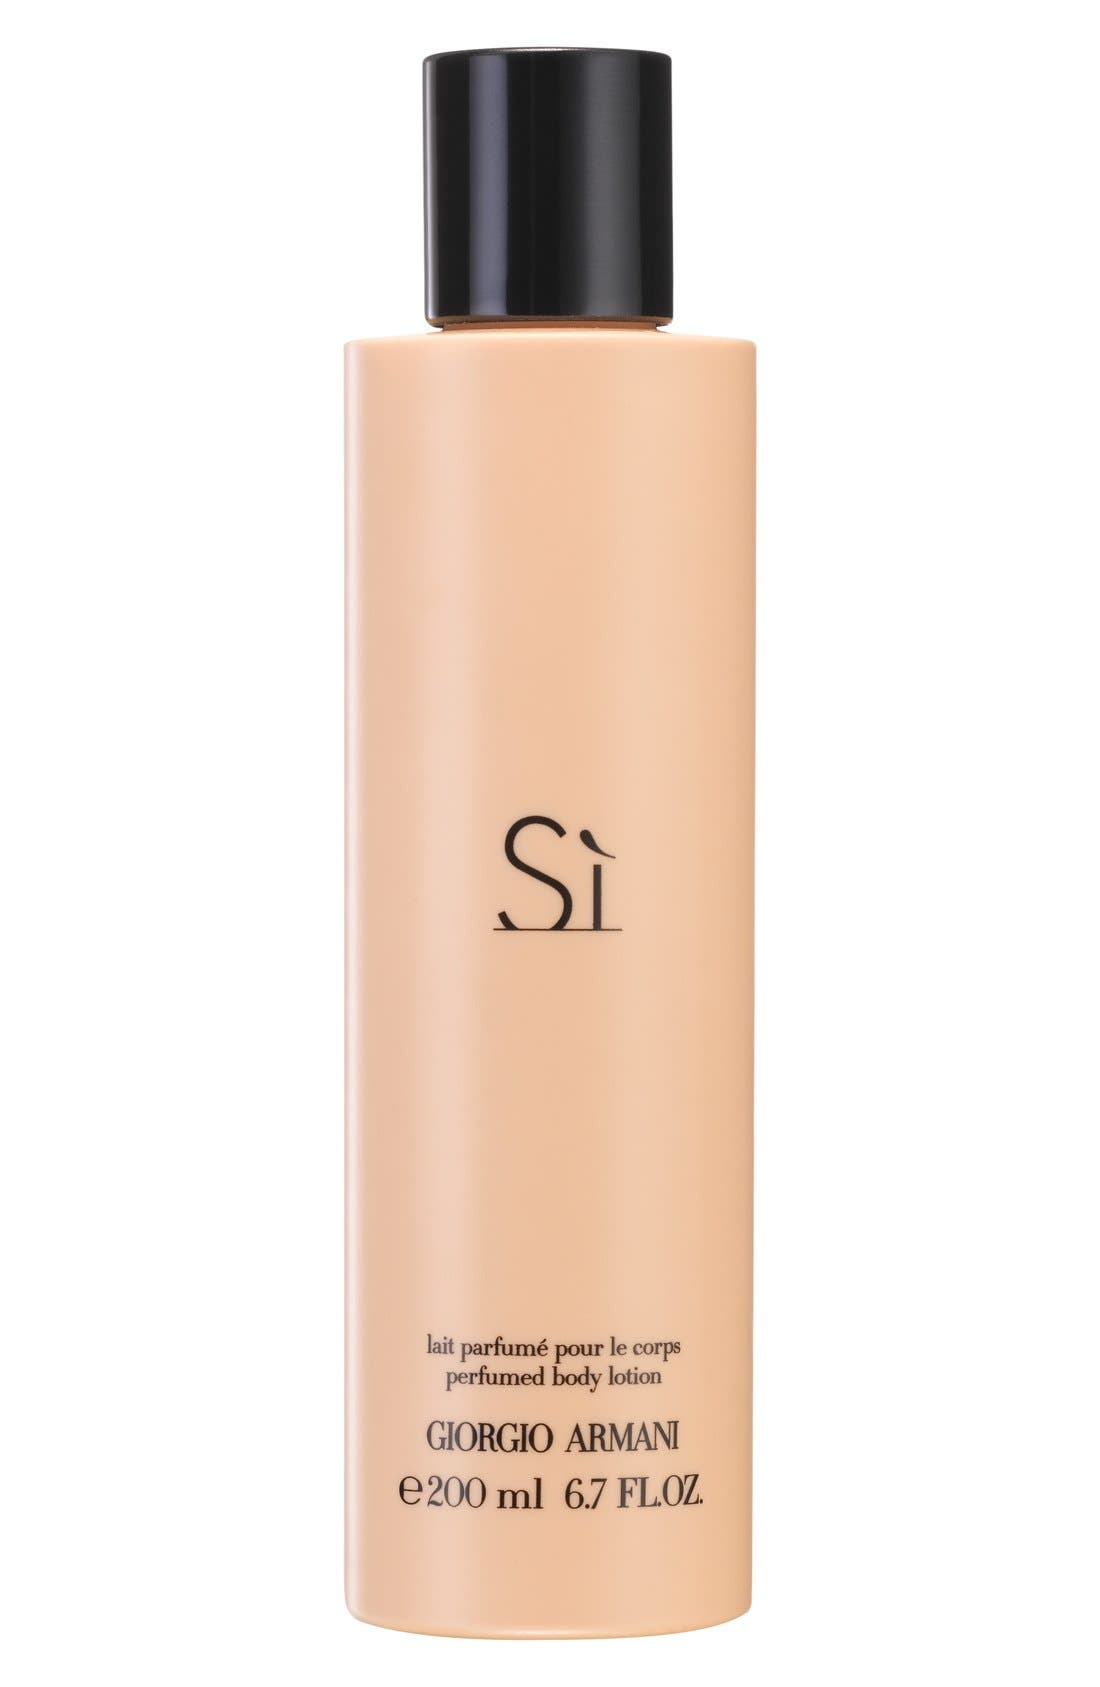 'Si' Body Lotion,                             Main thumbnail 1, color,                             000